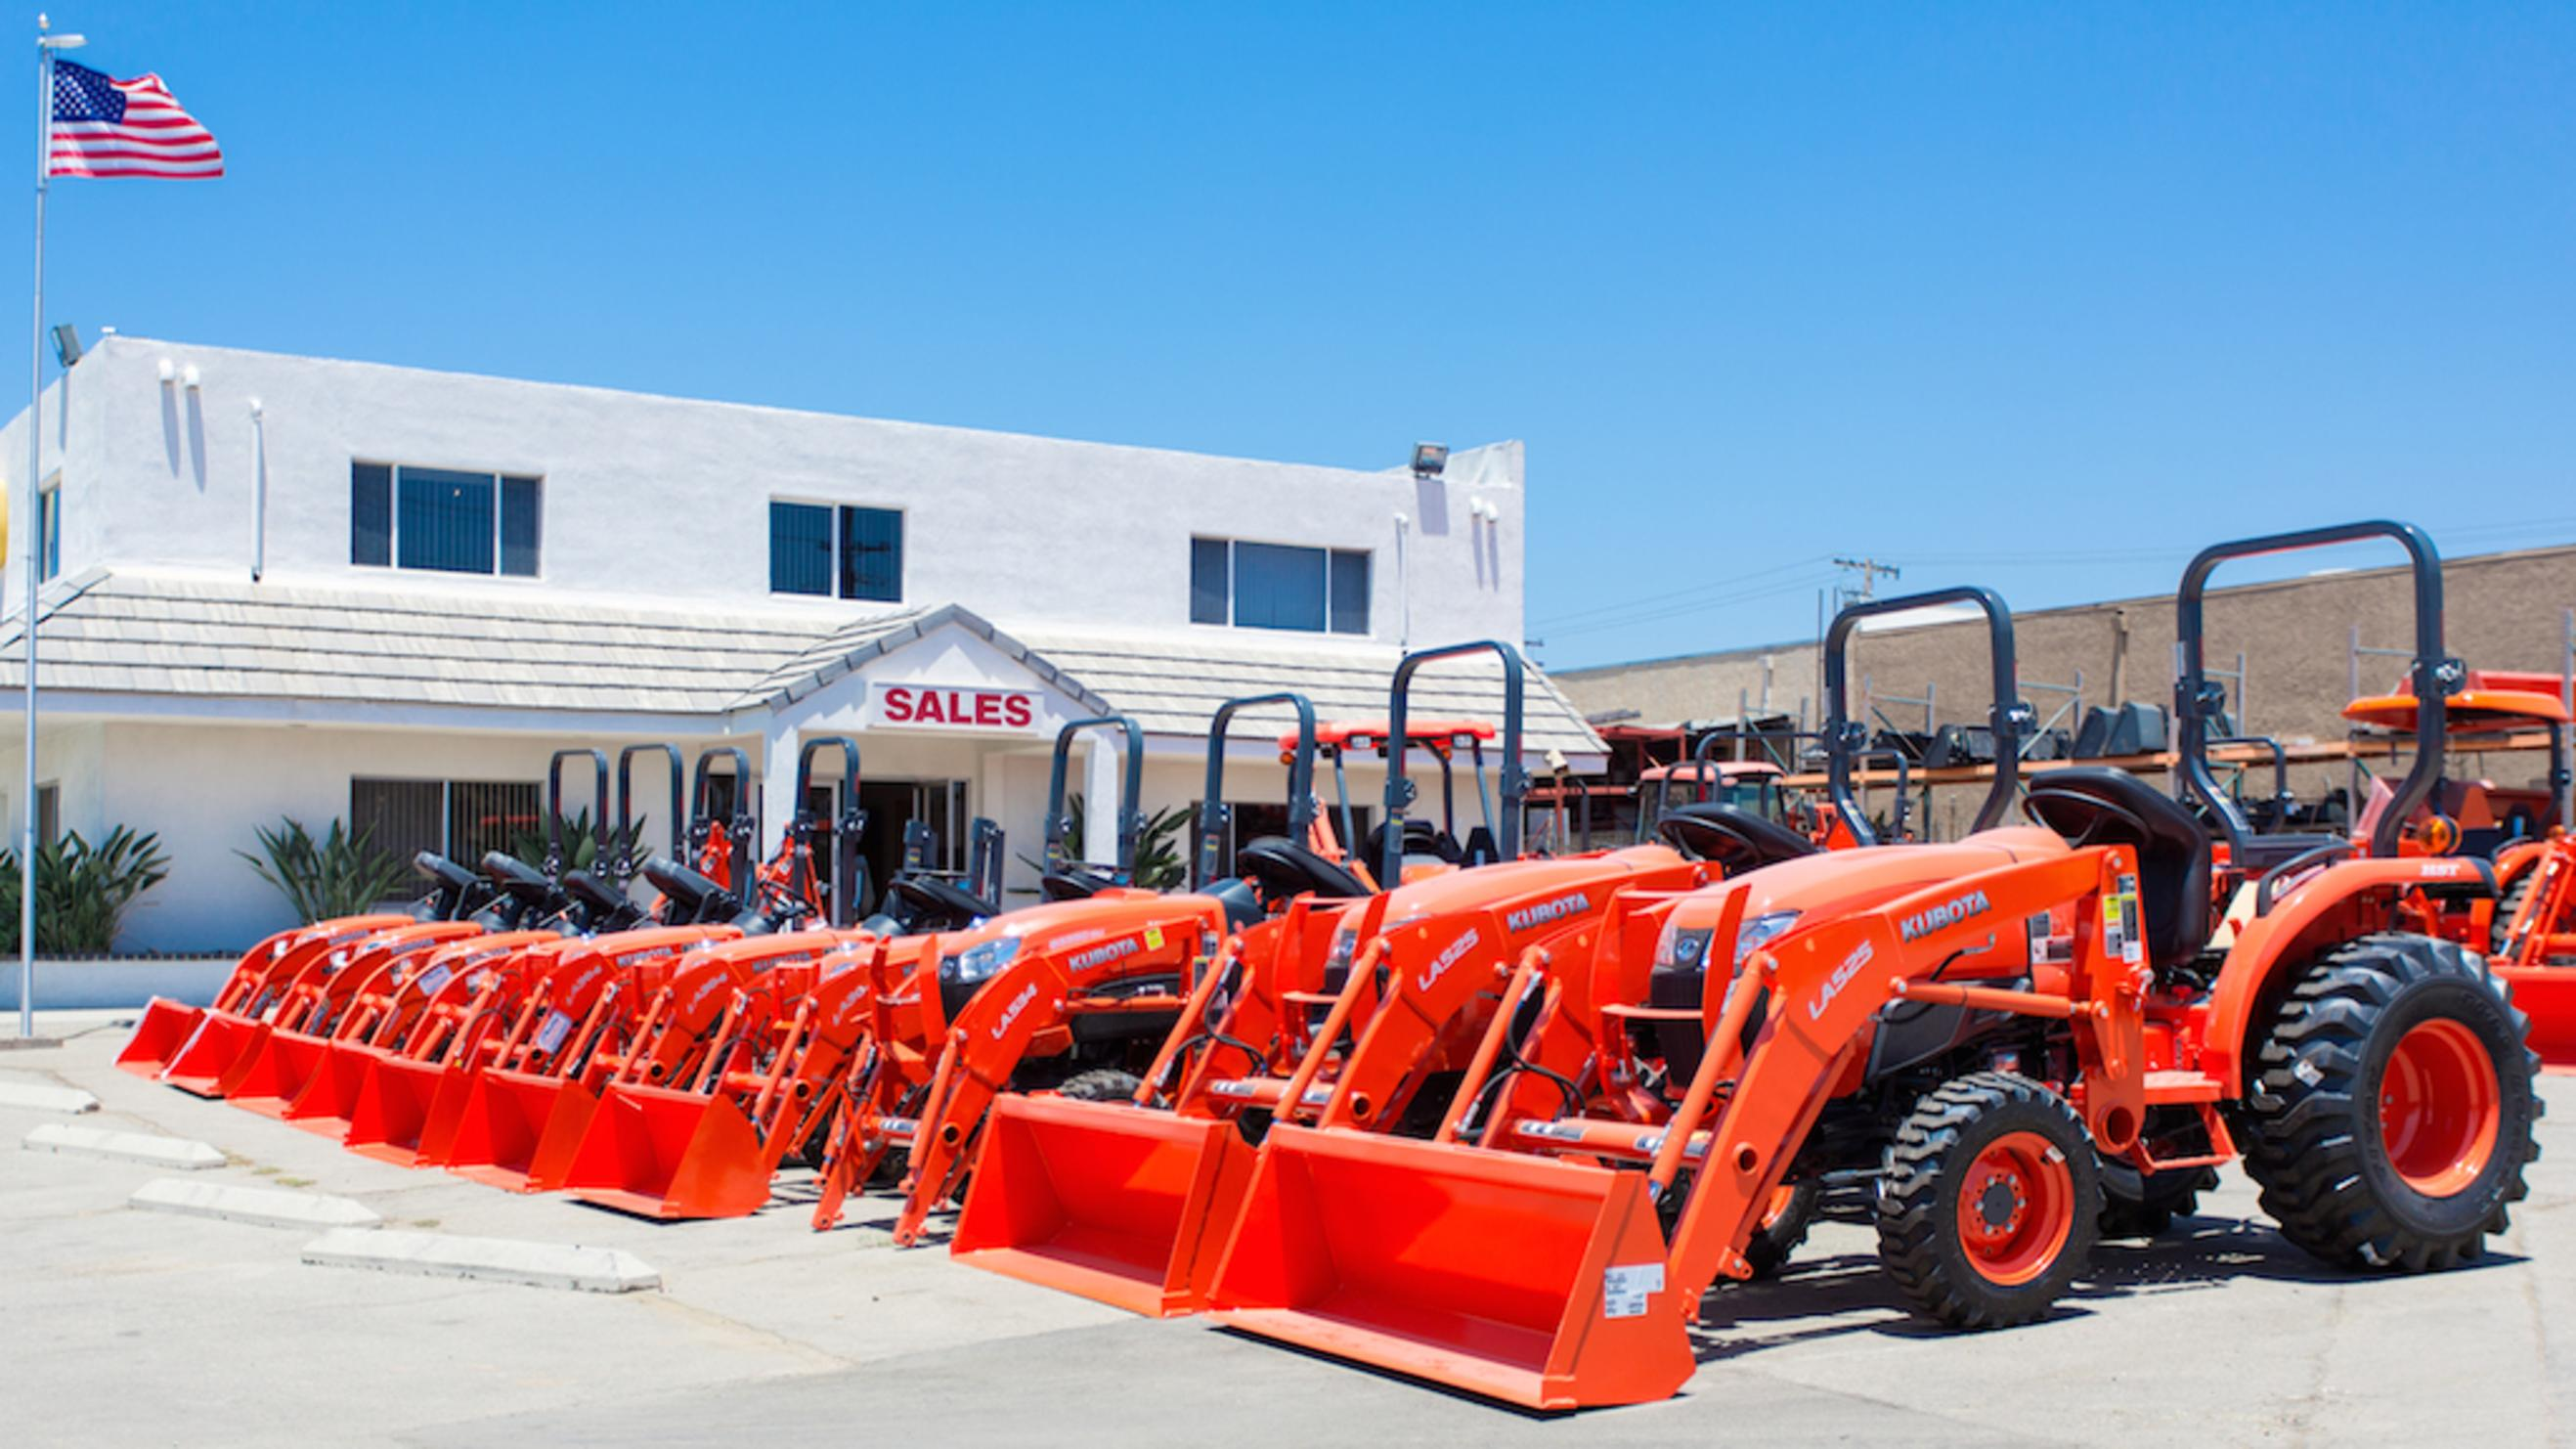 Equipment Dealership: Construction & Tractor sales in San Diego, Temecula, Escondido & Vista